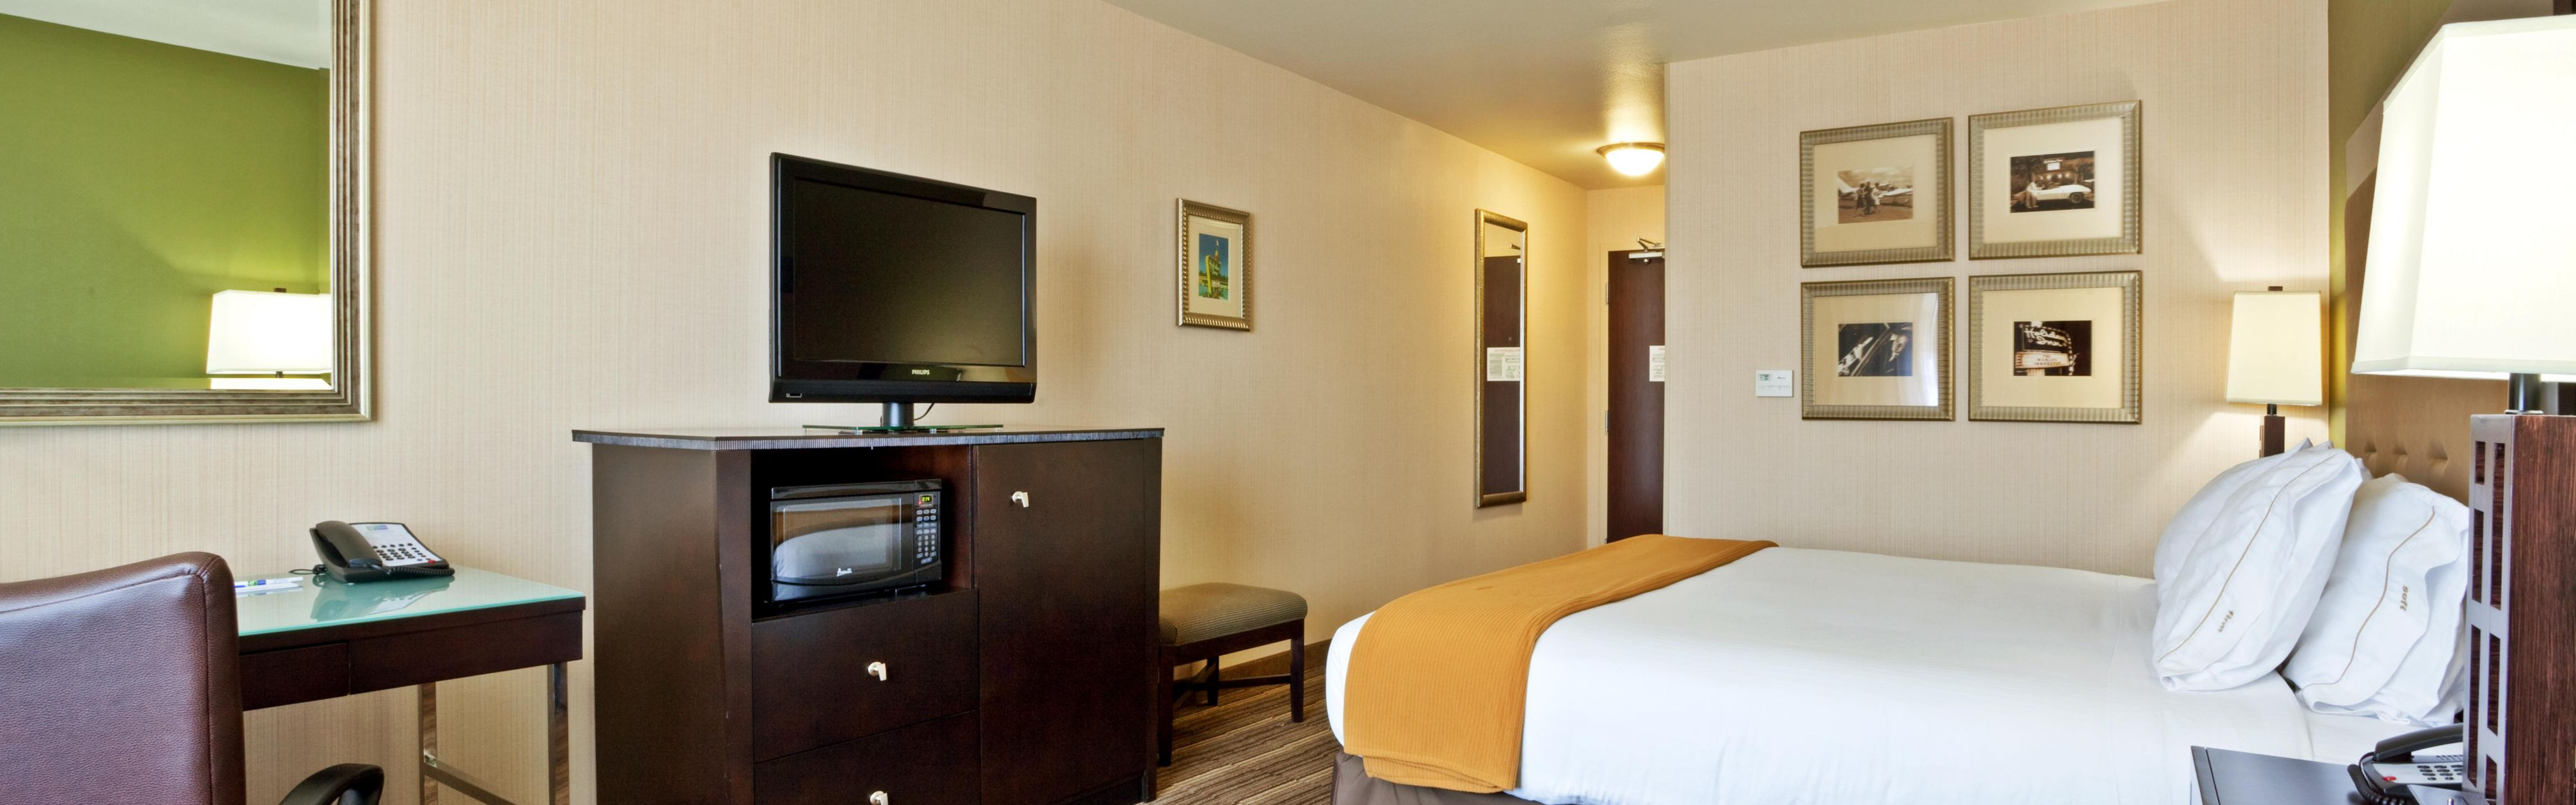 Holiday Inn Express & Suites Twin Falls image 1